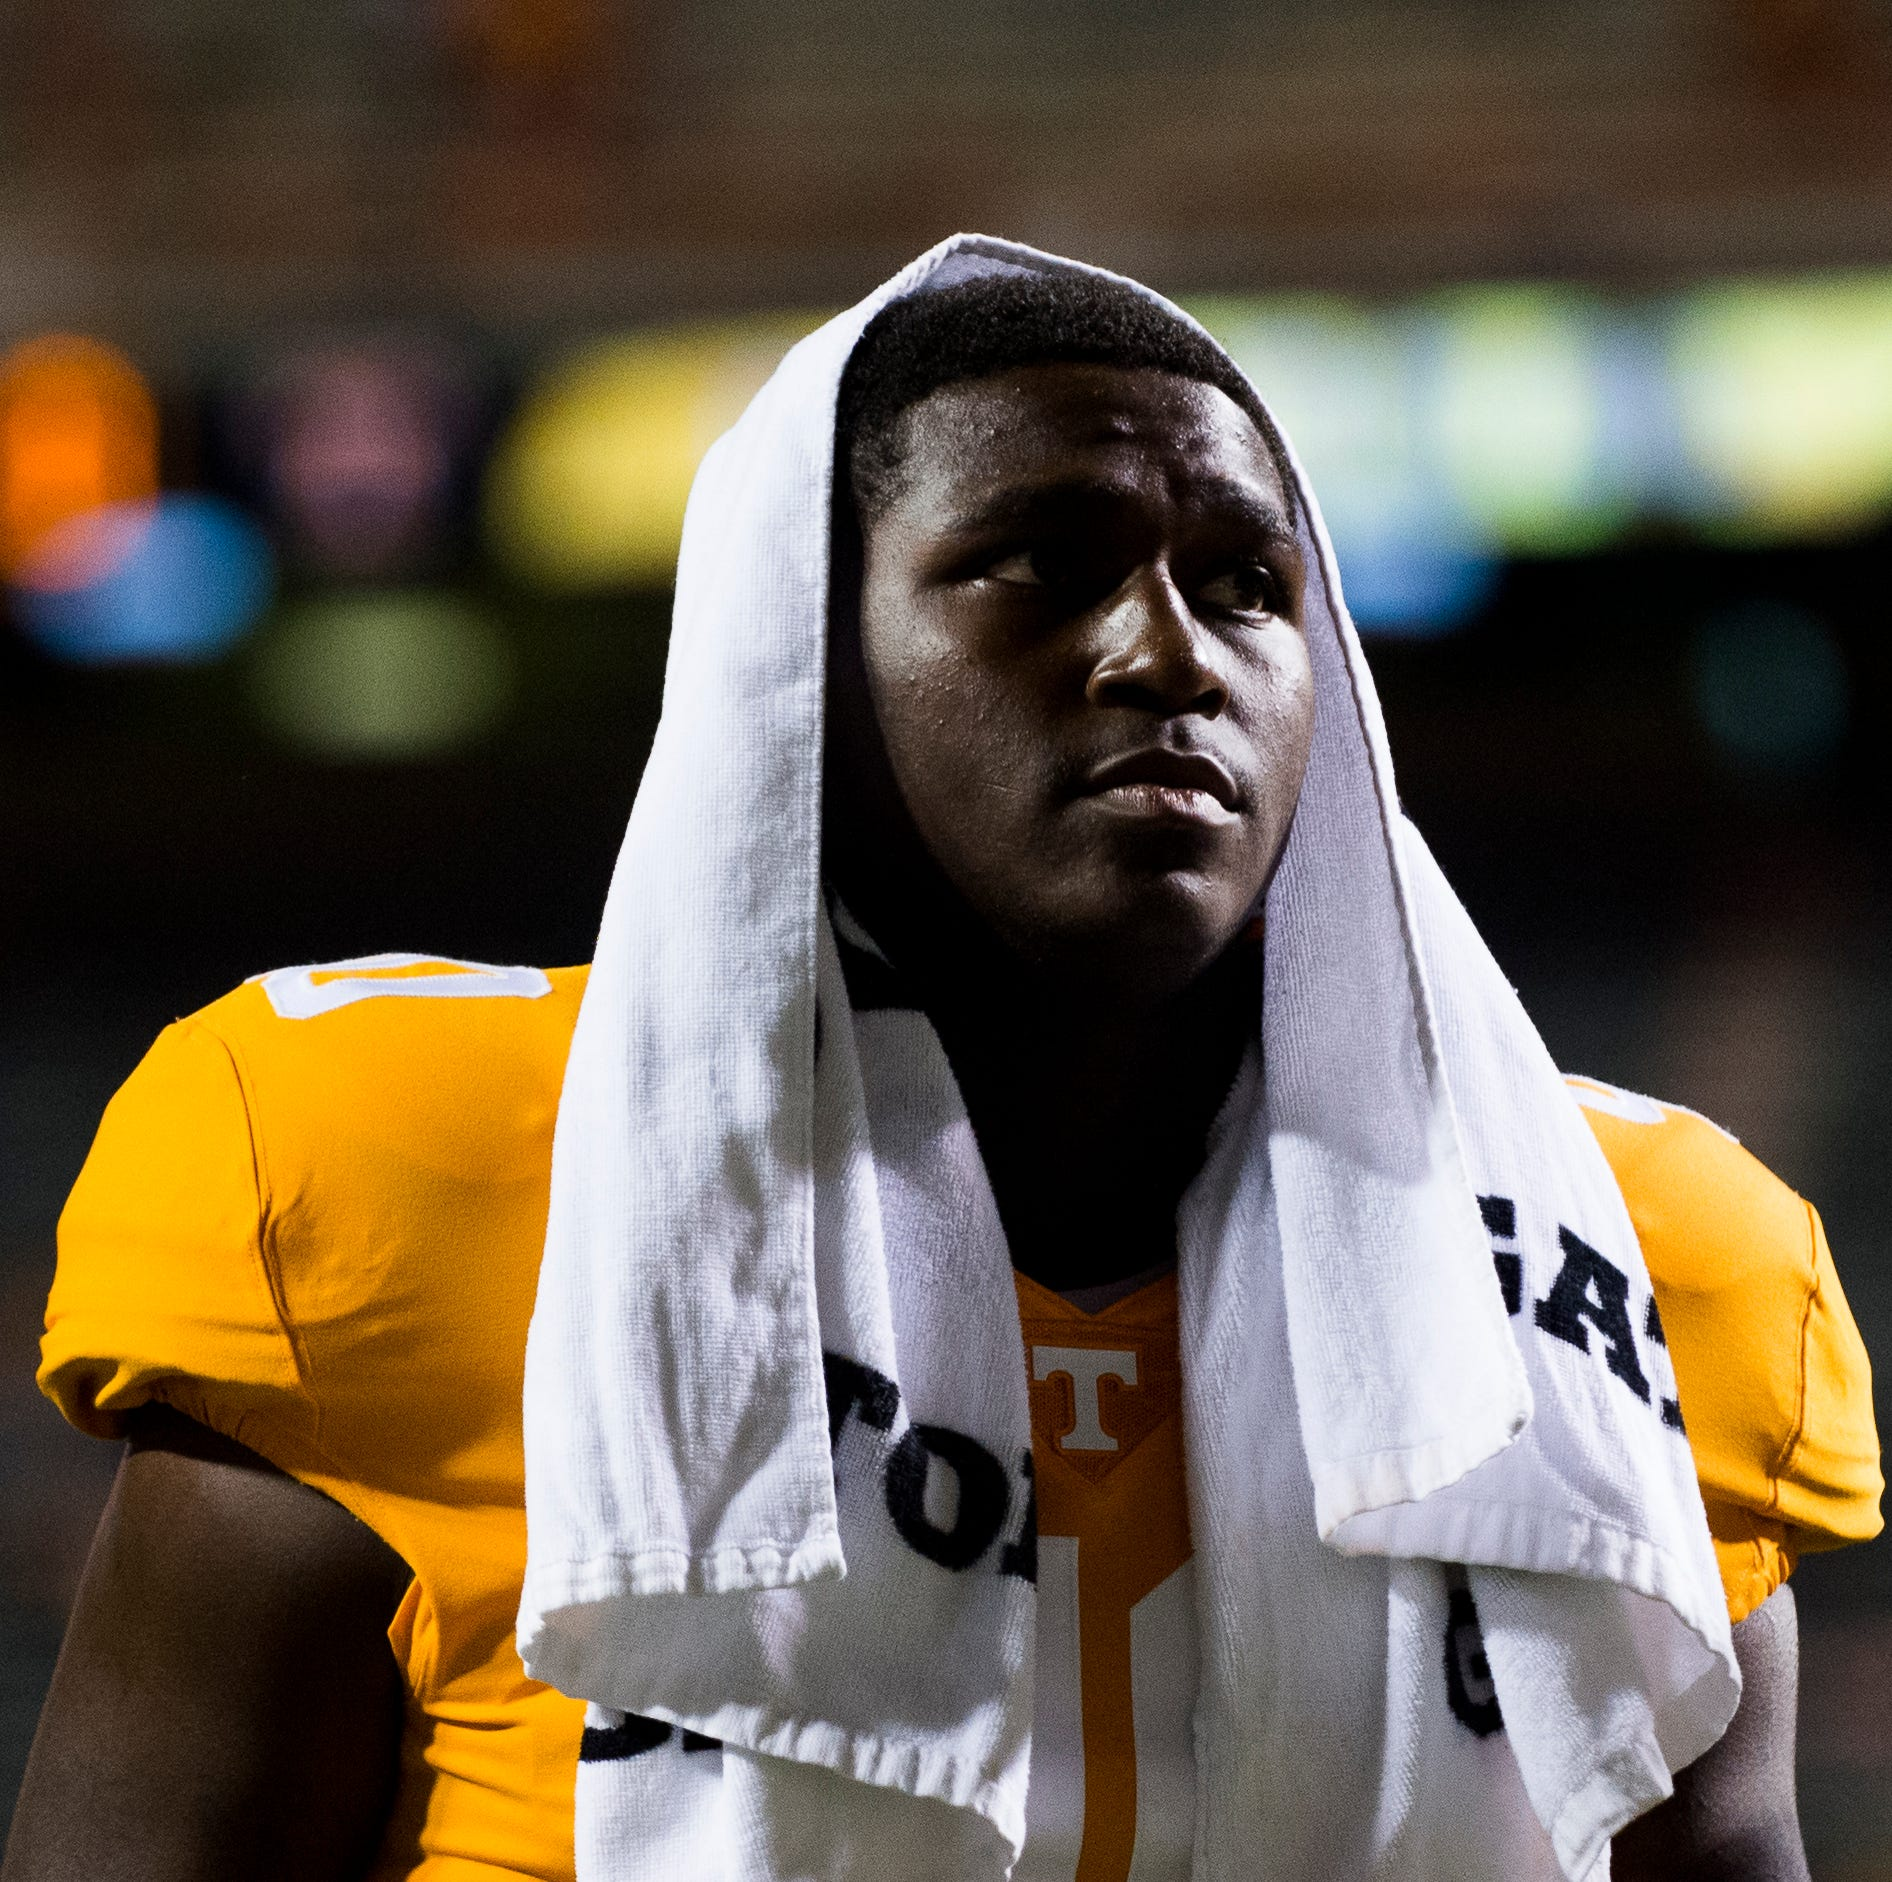 UT Vols: Jeremy Pruitt monitors redshirt status of some freshmen, including JJ Peterson